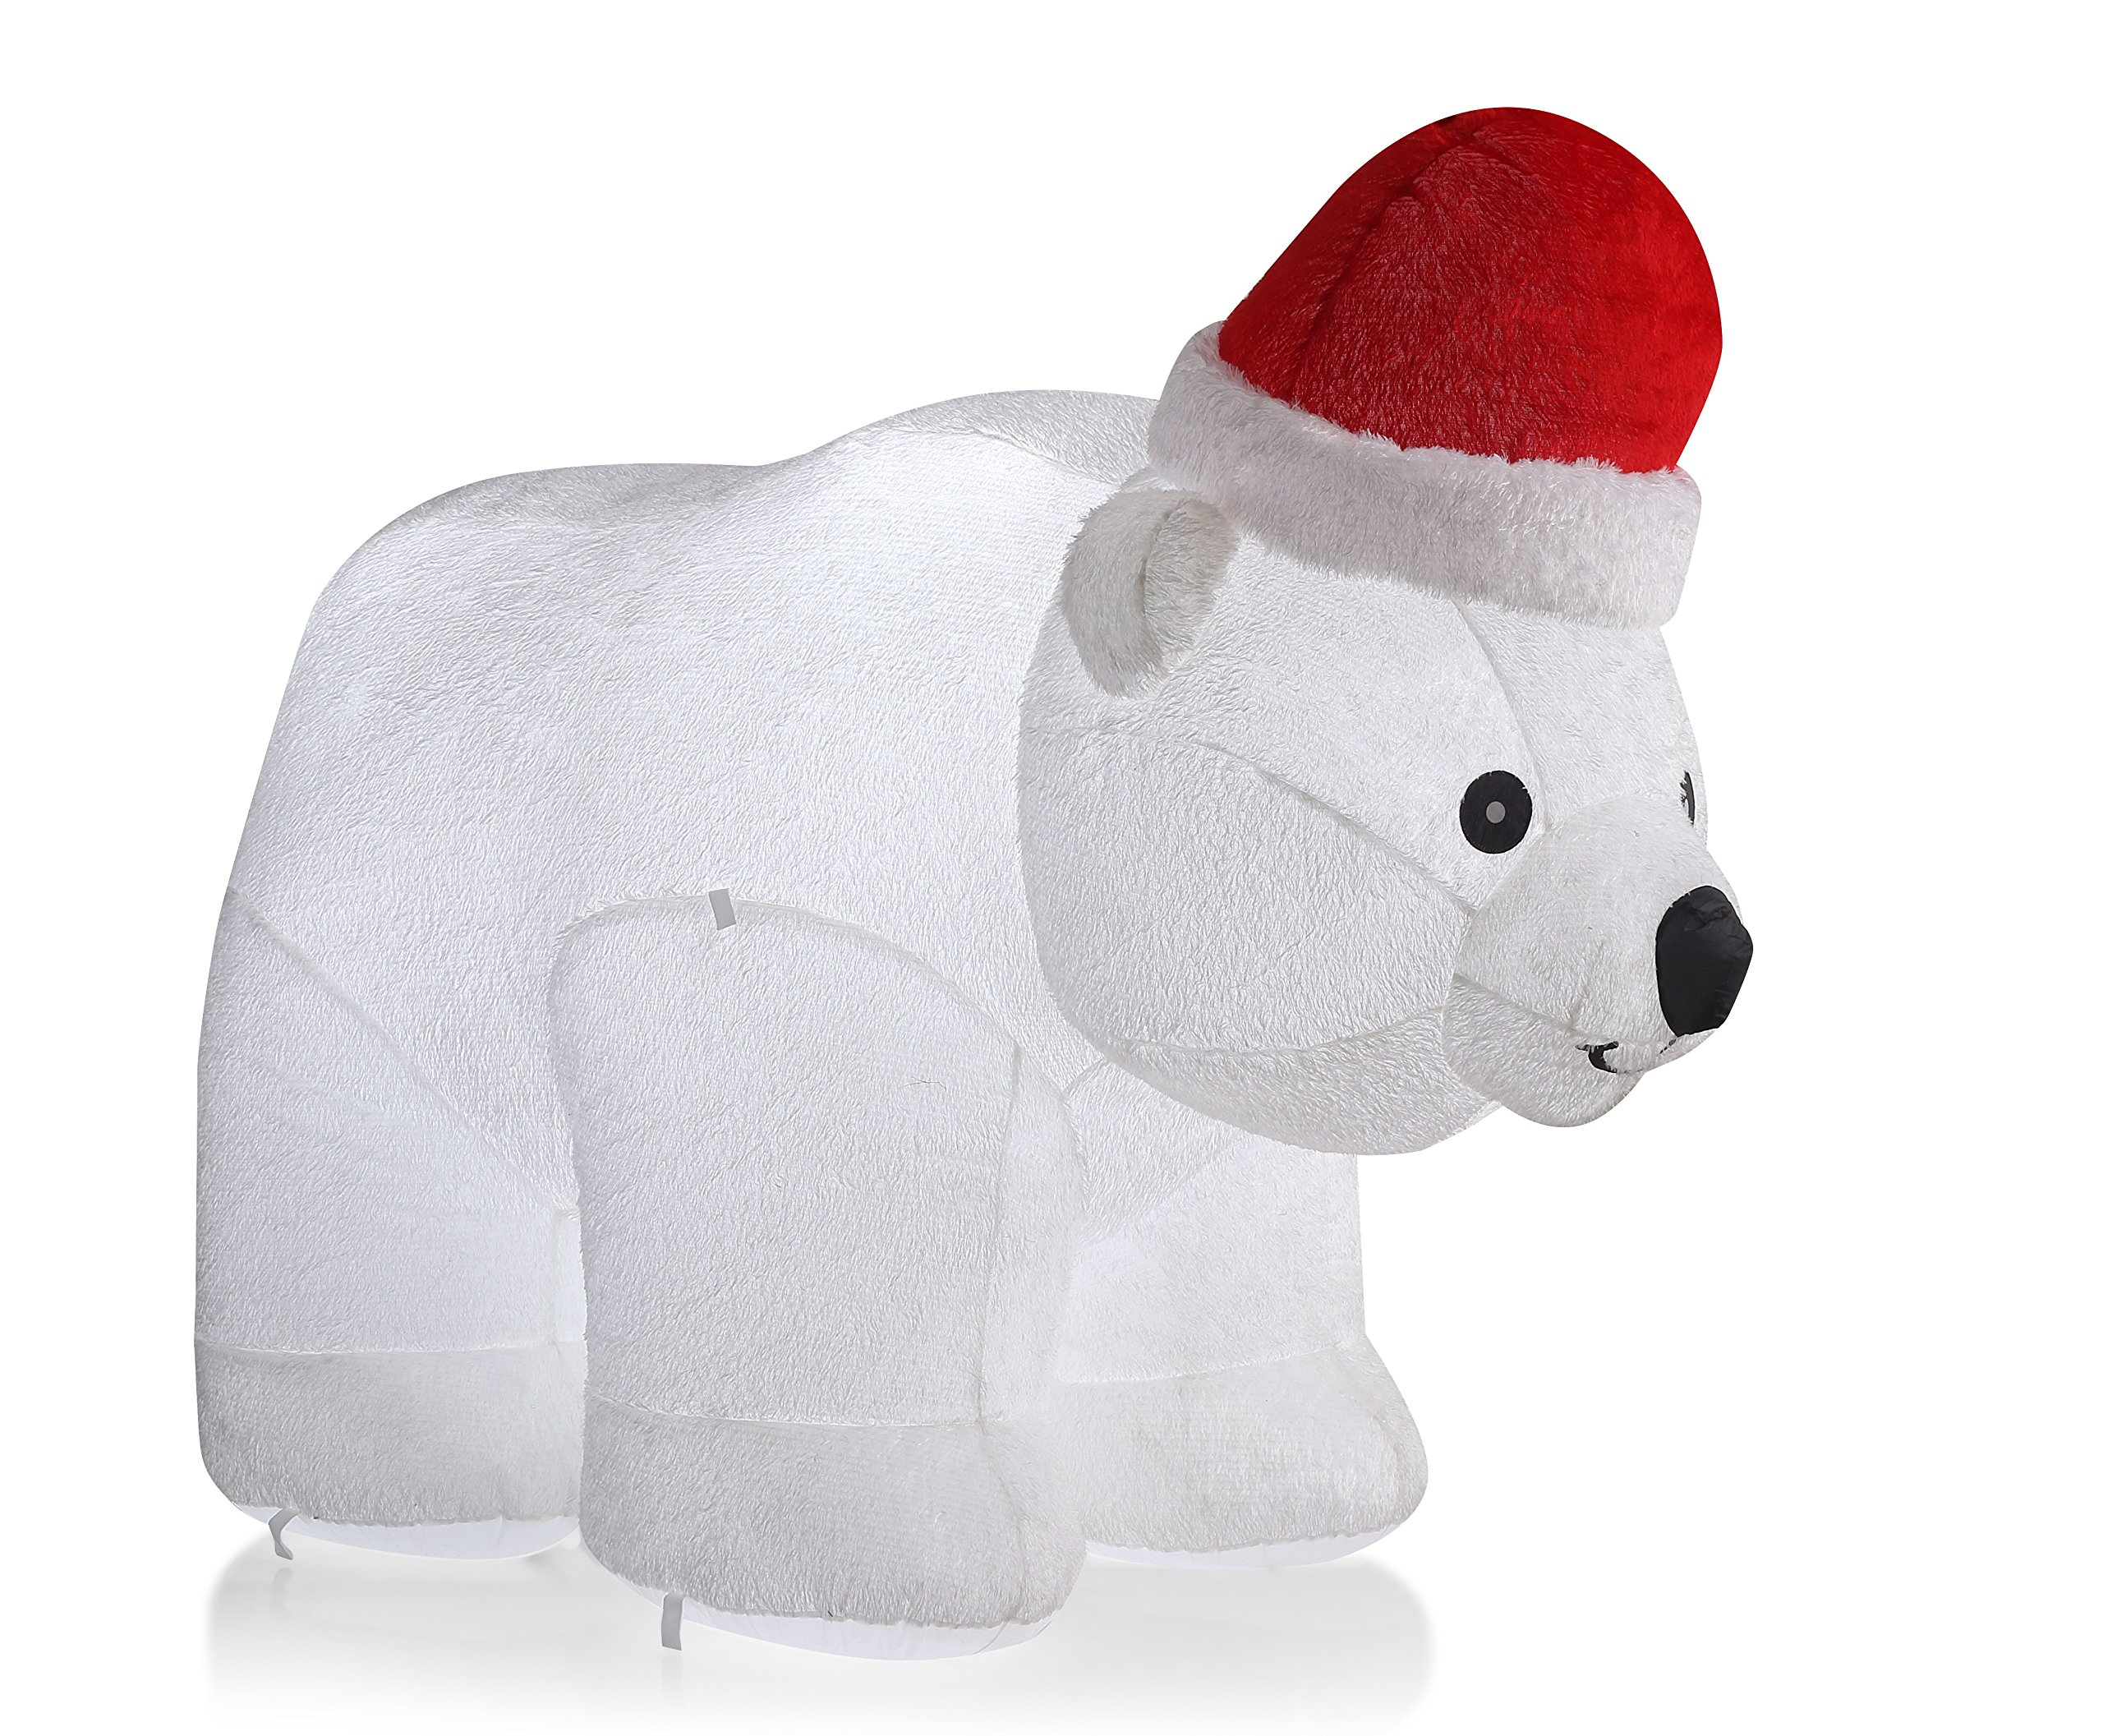 VIDAMORE 6.5 Foot Large Inflatable X-Mas Polar Bear LED Lighted Inflatables Outdoor Holiday Yard Lawn Decorations by Vidamore (Image #3)